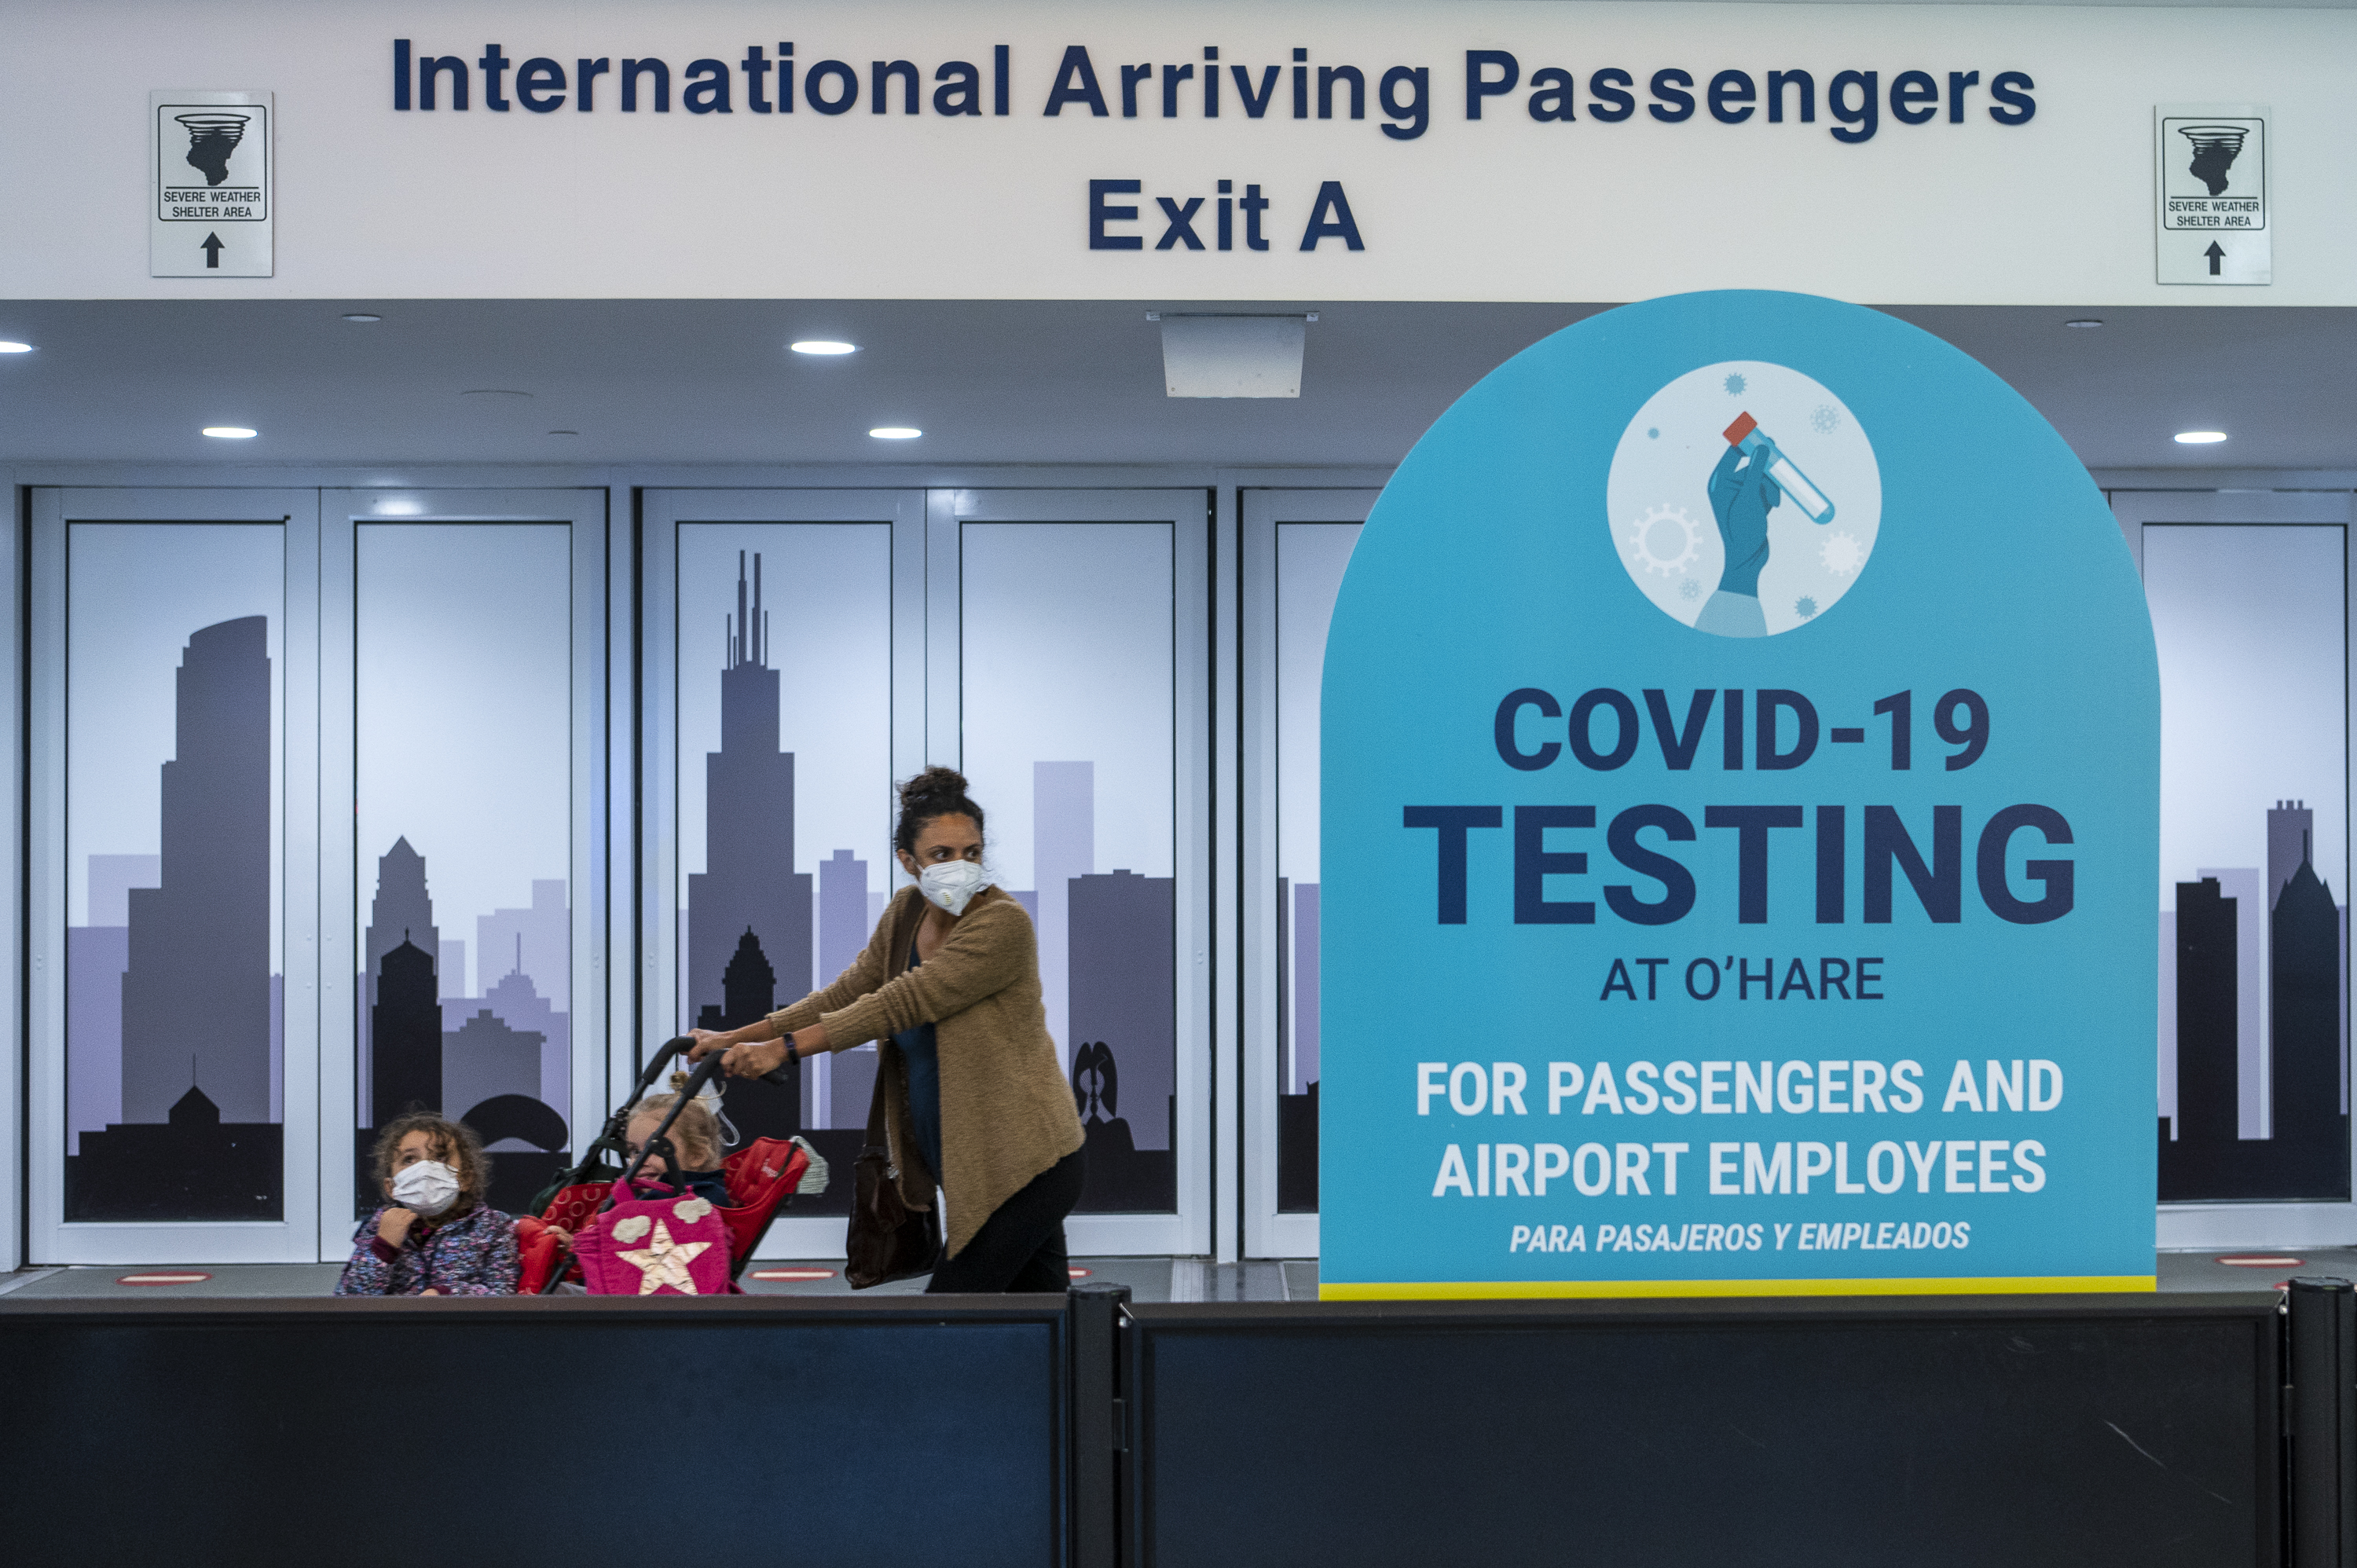 A woman pushes a stroller with children after exiting the security screening at O'Hare International Airport's International Terminal last week. No travel quarantine restrictions are in place for people arriving to Chicago from any U.S. state.